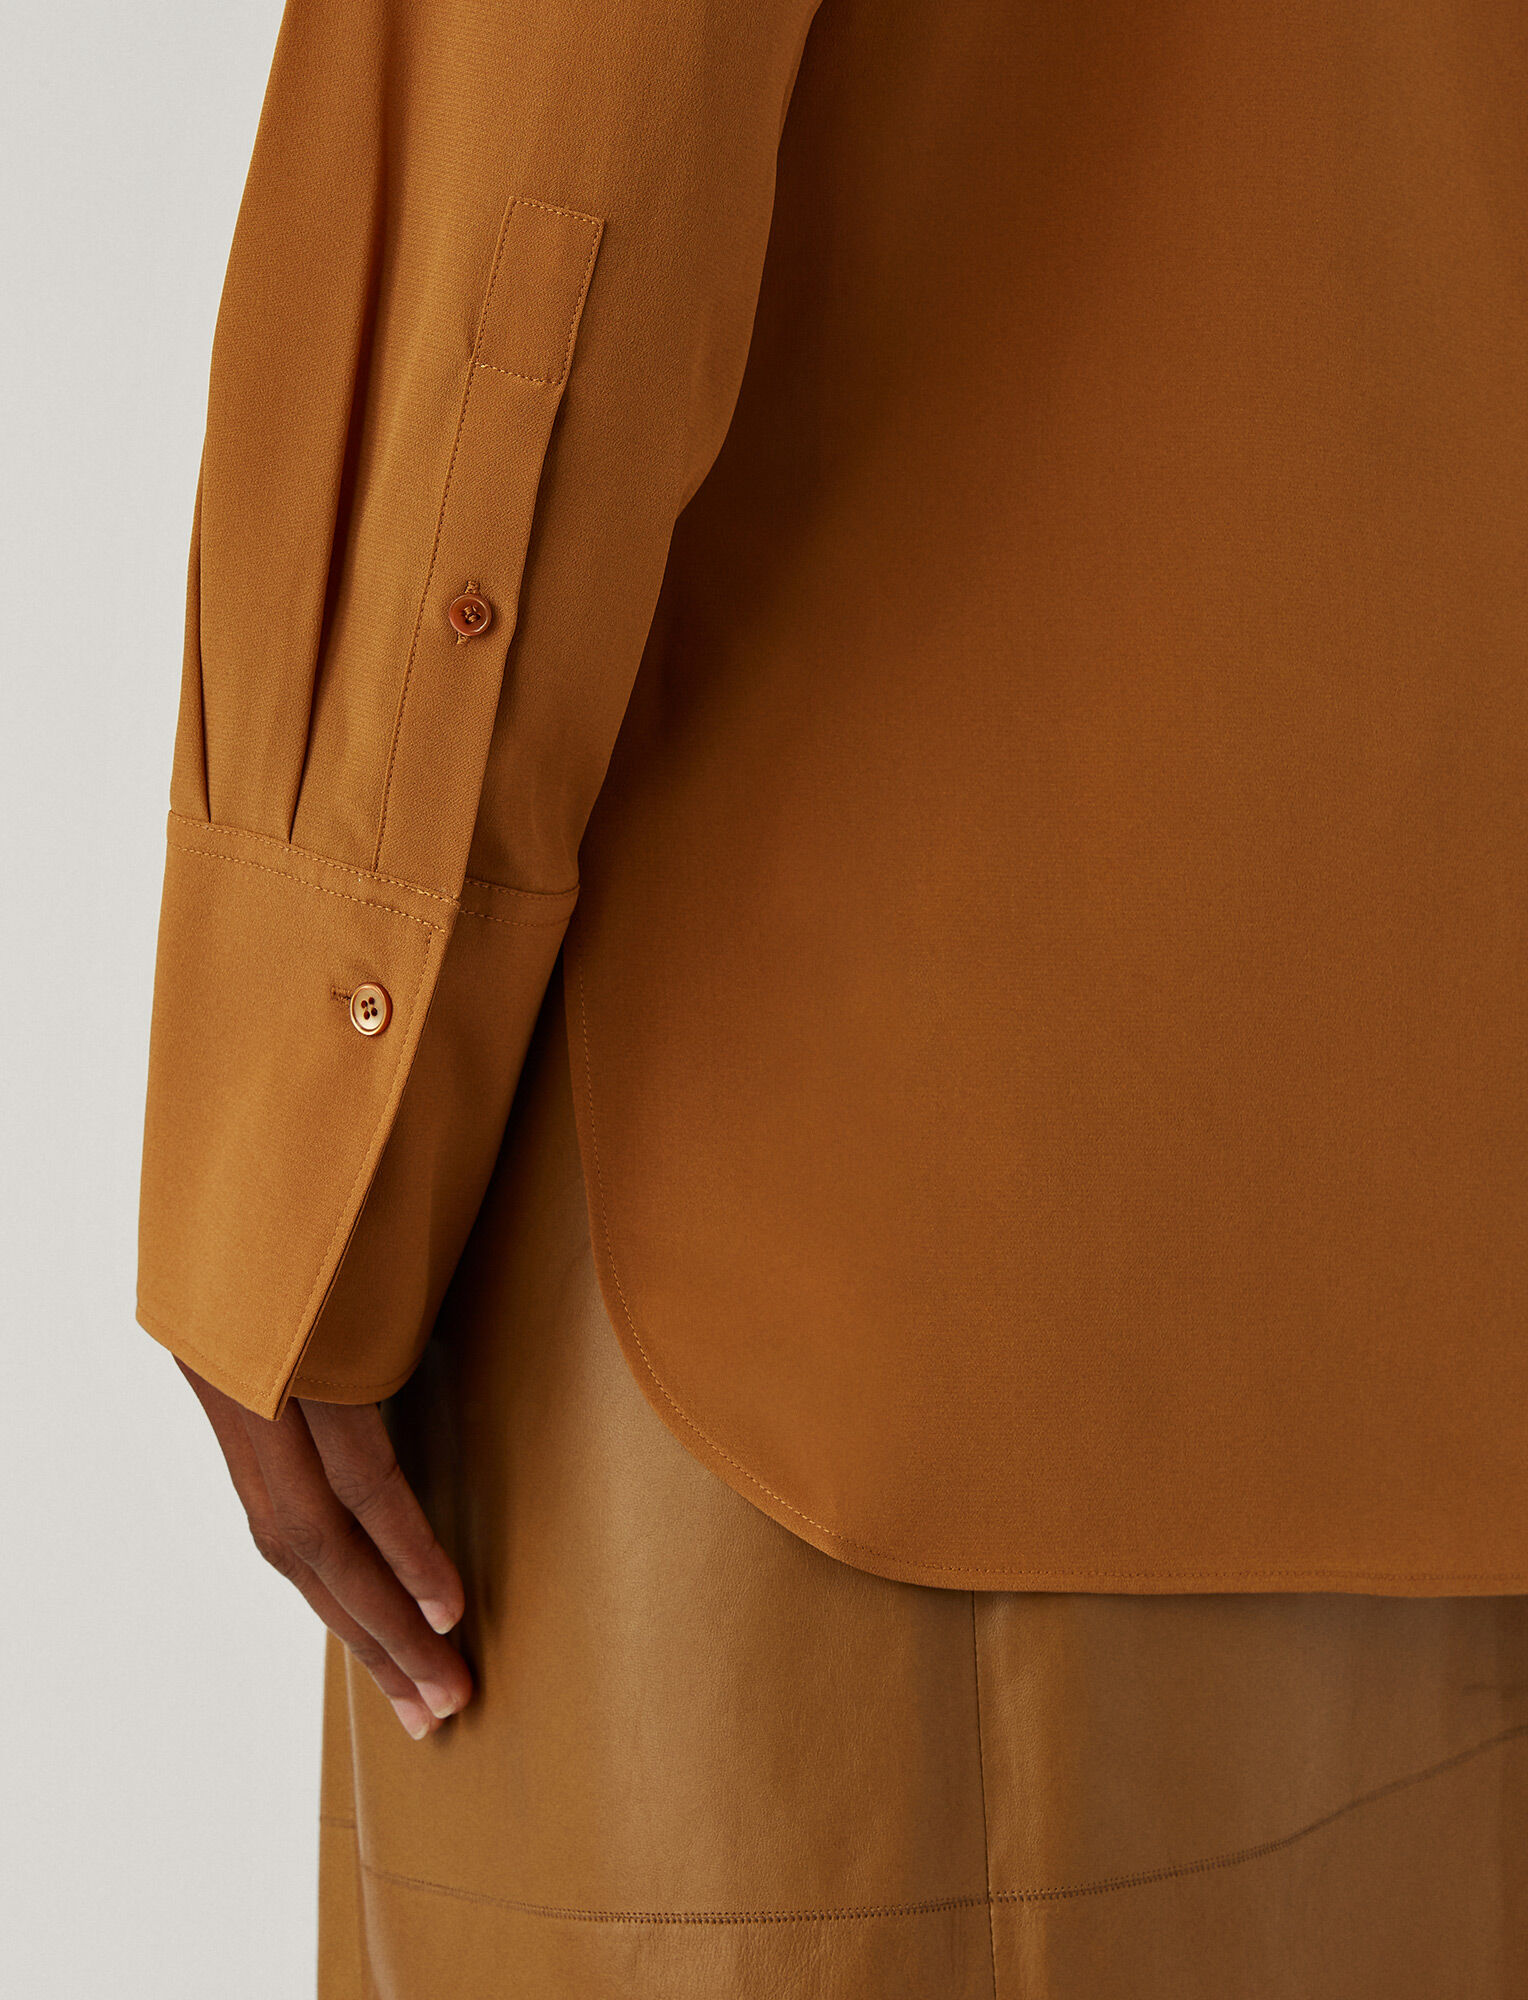 Joseph, Joe Crepe De Chine Blouse, in Cognac